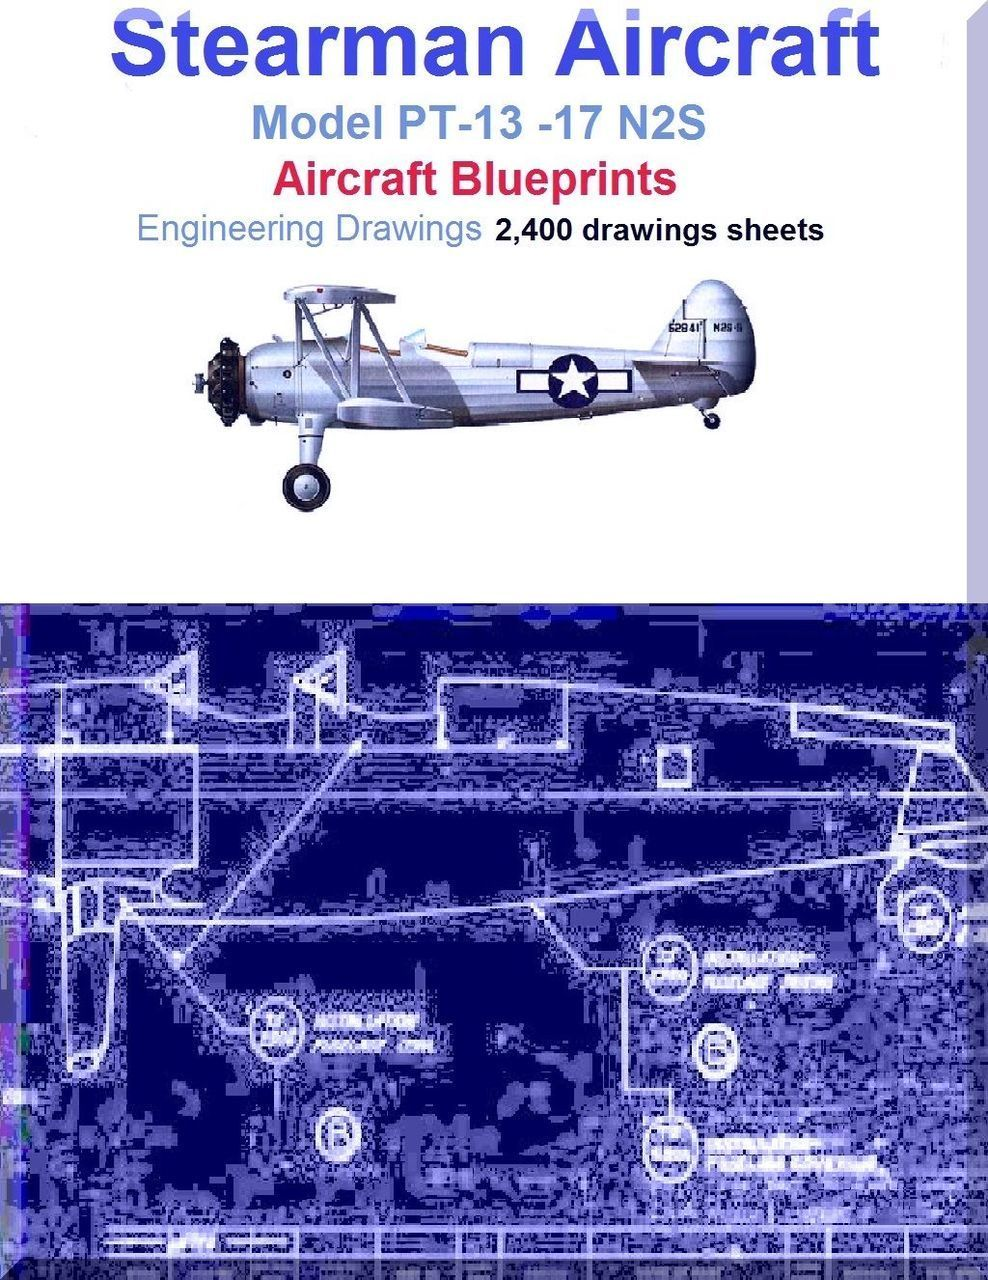 Stearman pt 13 17 n2s aircraft blueprints engineering drawings stearman pt 13 17 n2s aircraft blueprints engineering drawings download malvernweather Choice Image